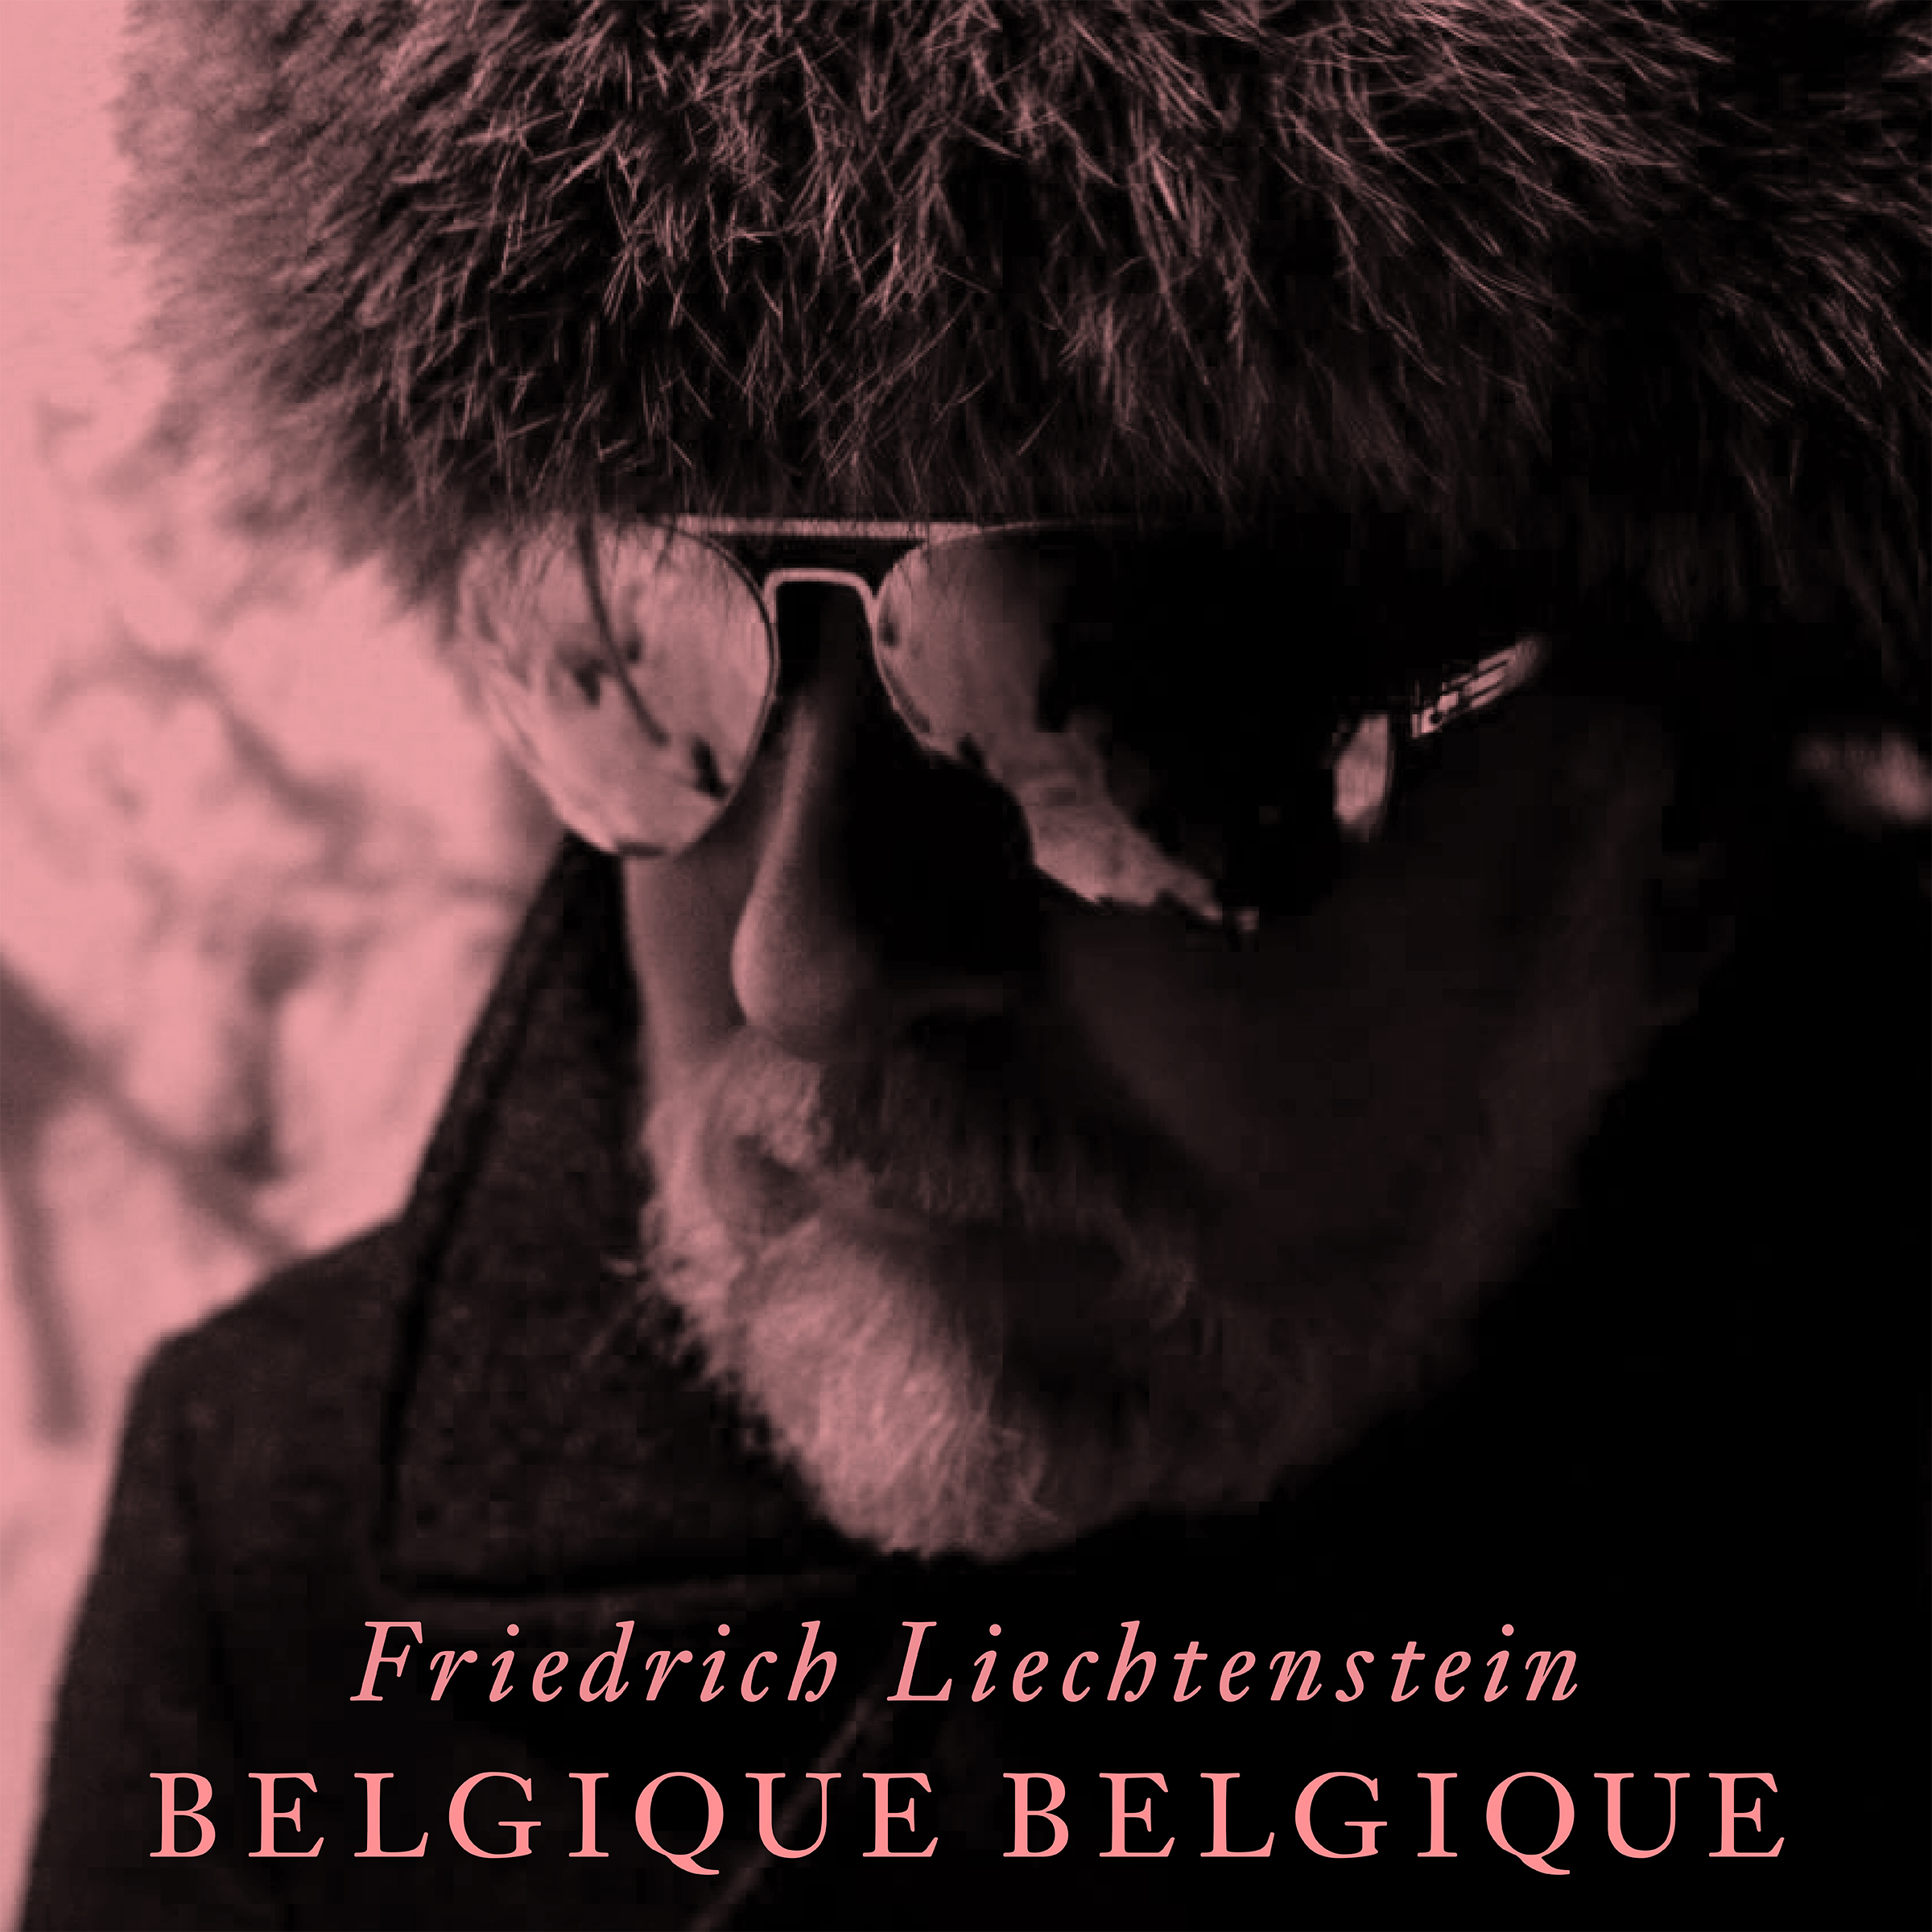 Friedrich Liechtenstein - Belgique, Belgique - Single Cover